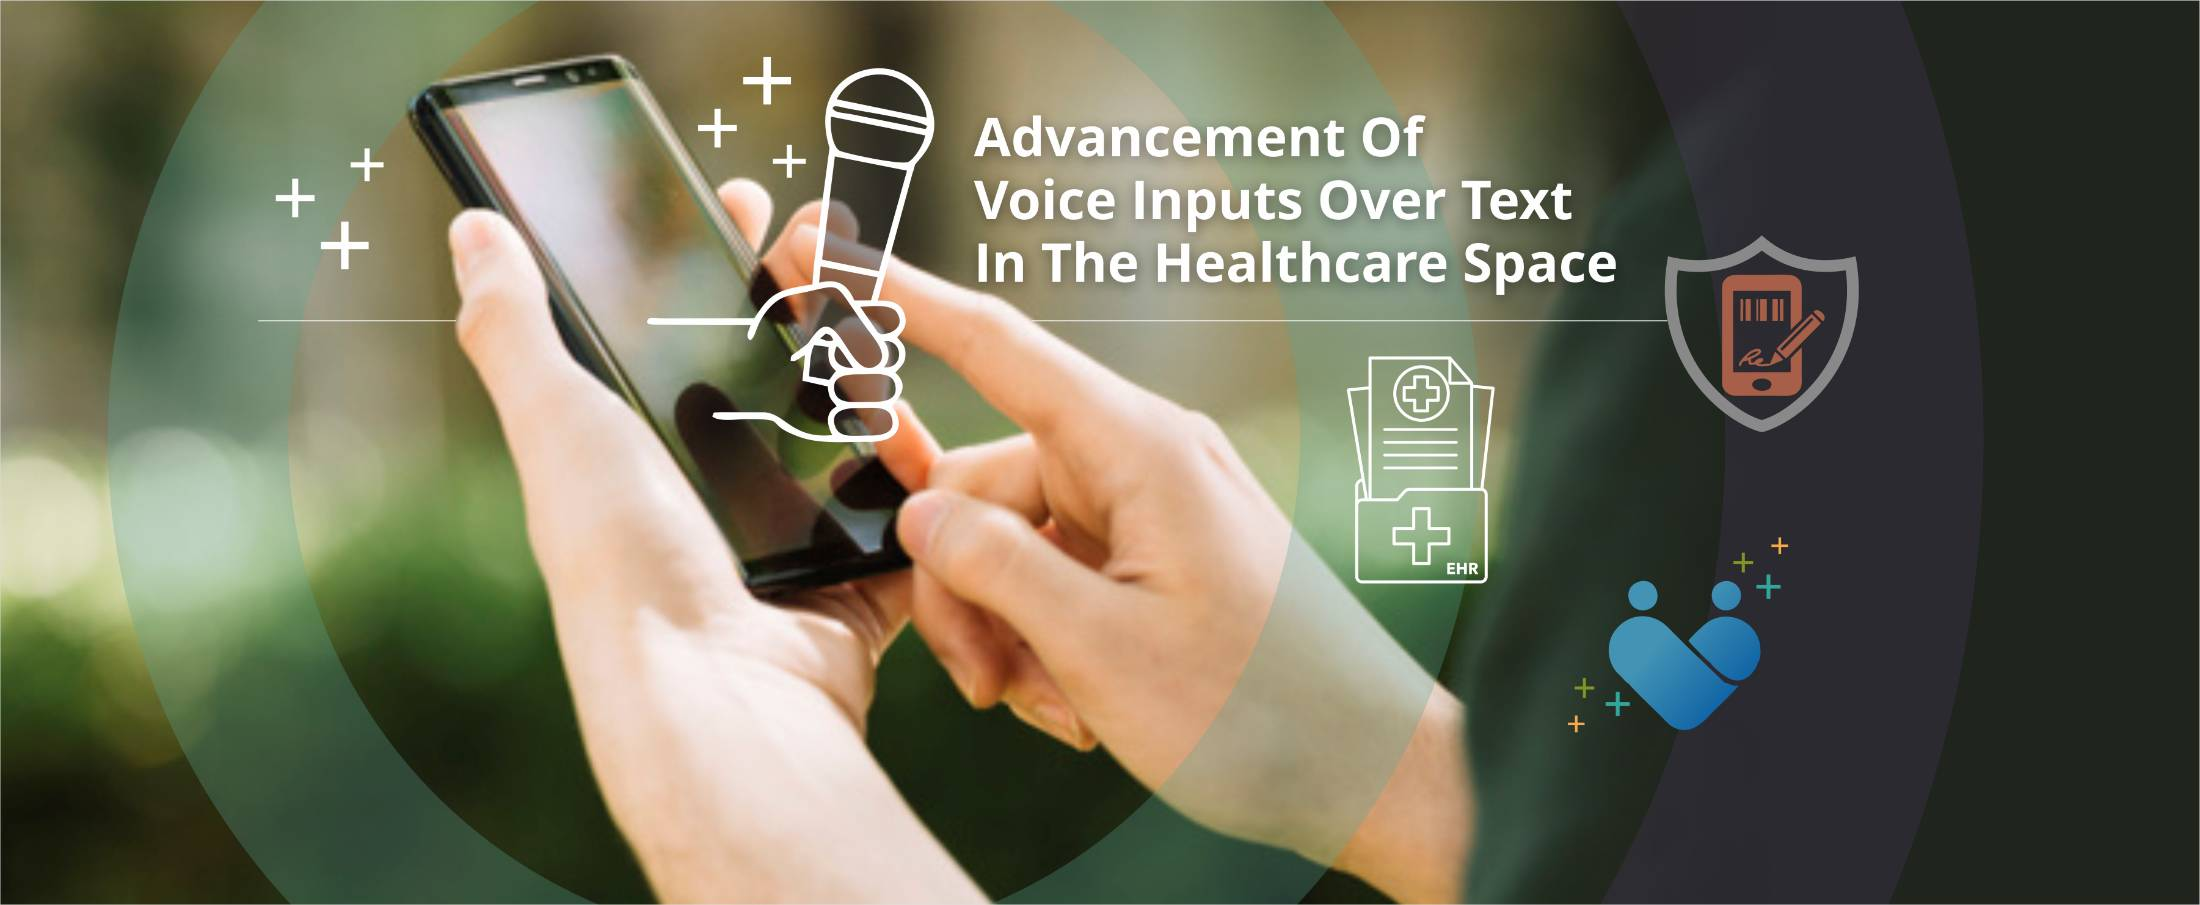 Advancement of Voice Inputs over Text in Healthcare